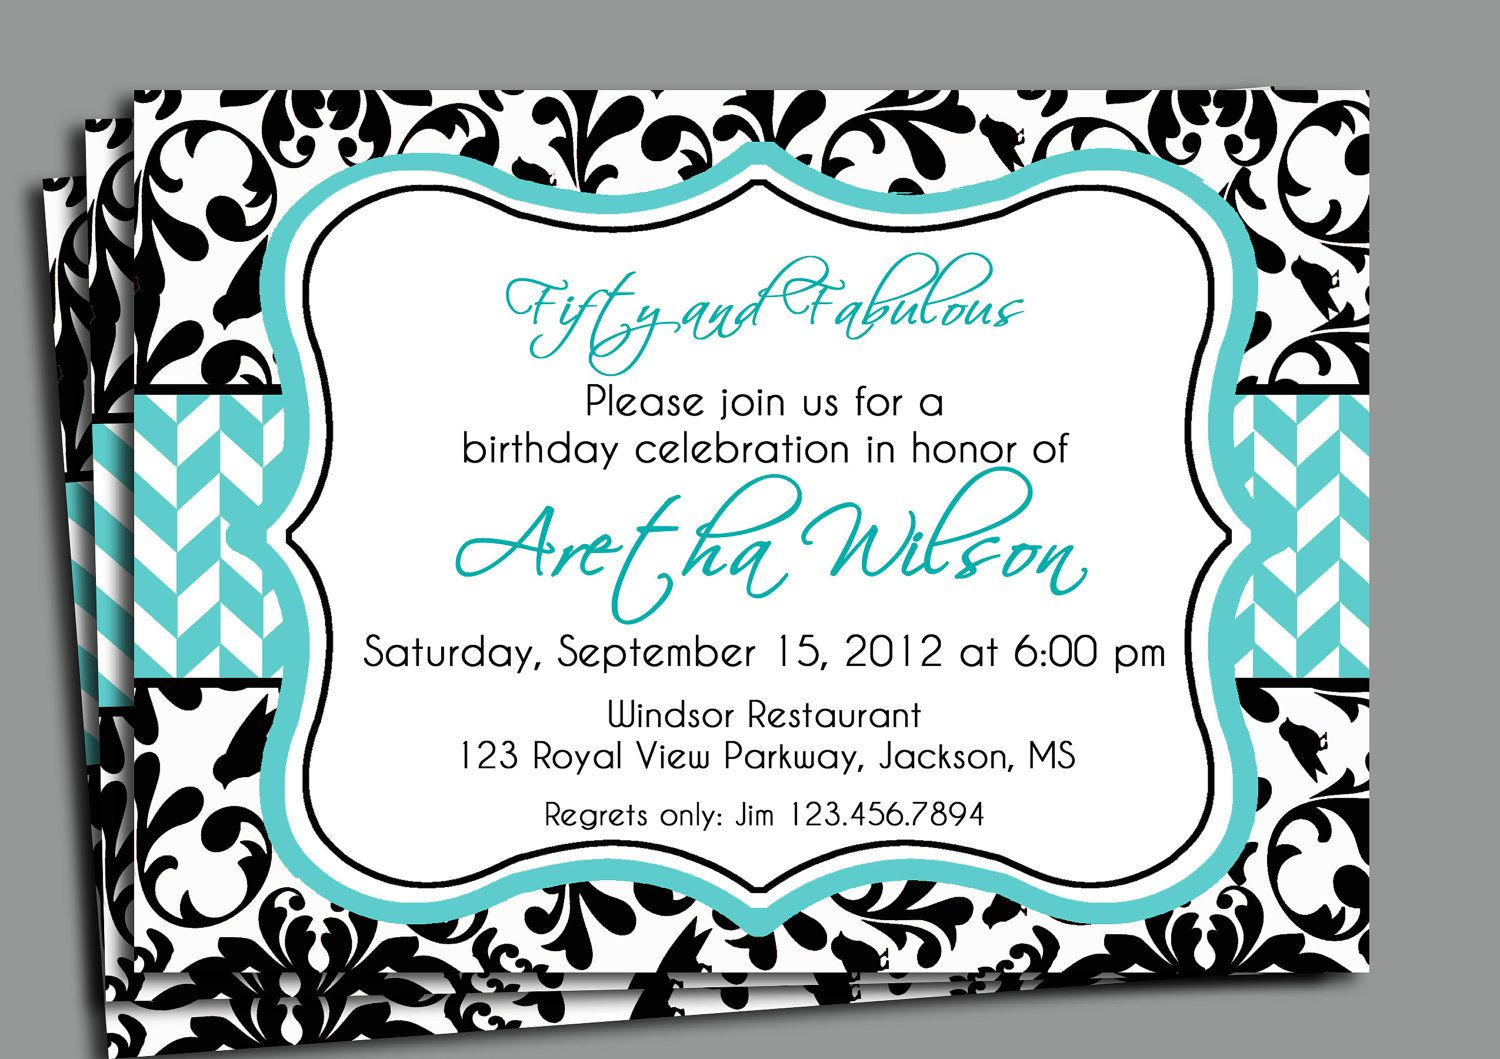 free birthday invitation templates ; free_birthday_invitation_templates_for_adults_0